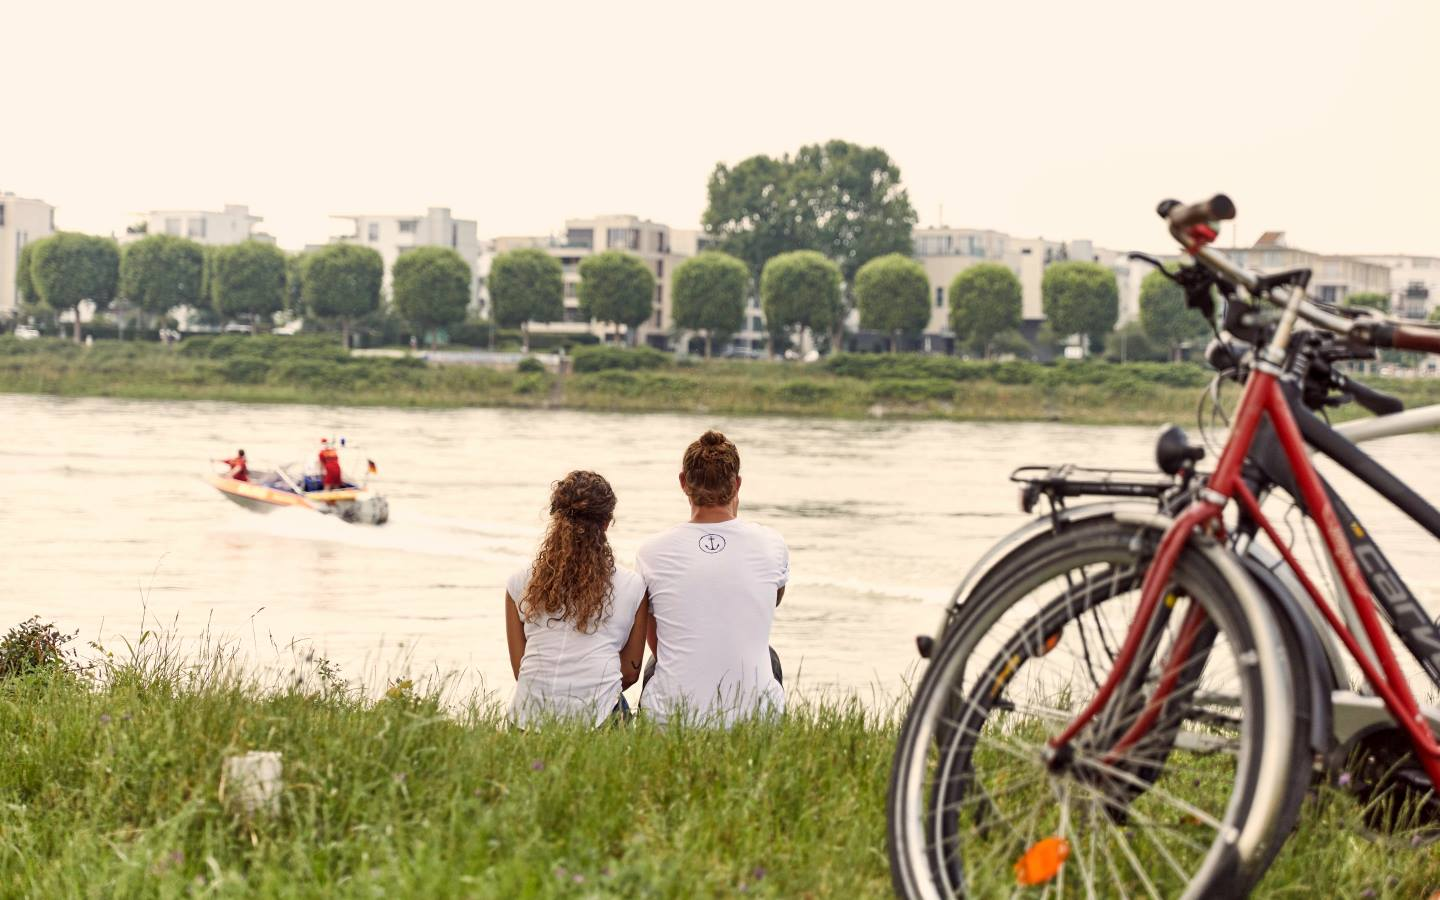 Herschelbad Mannheim Discover Mannheim By Bike With These Amazing Tours